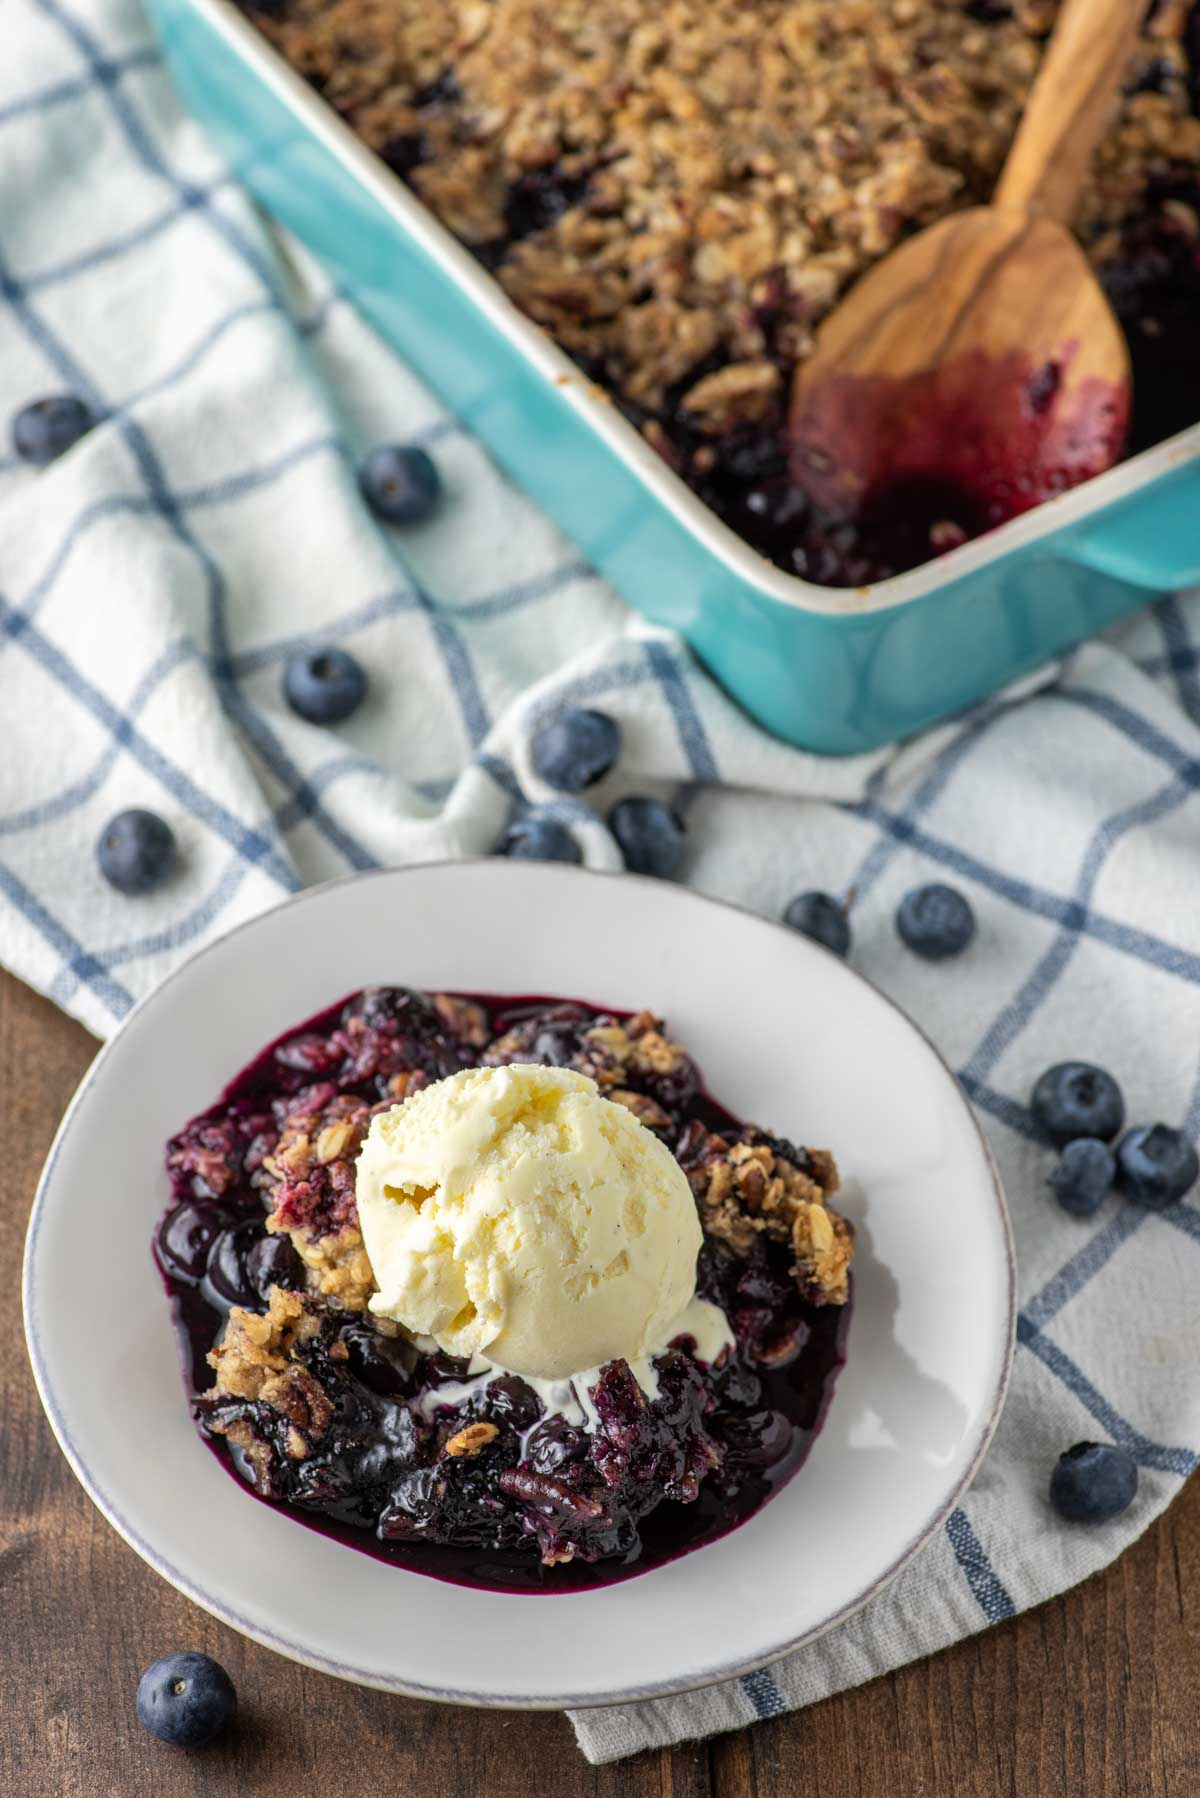 blueberry crisp on plate with baking dish in background